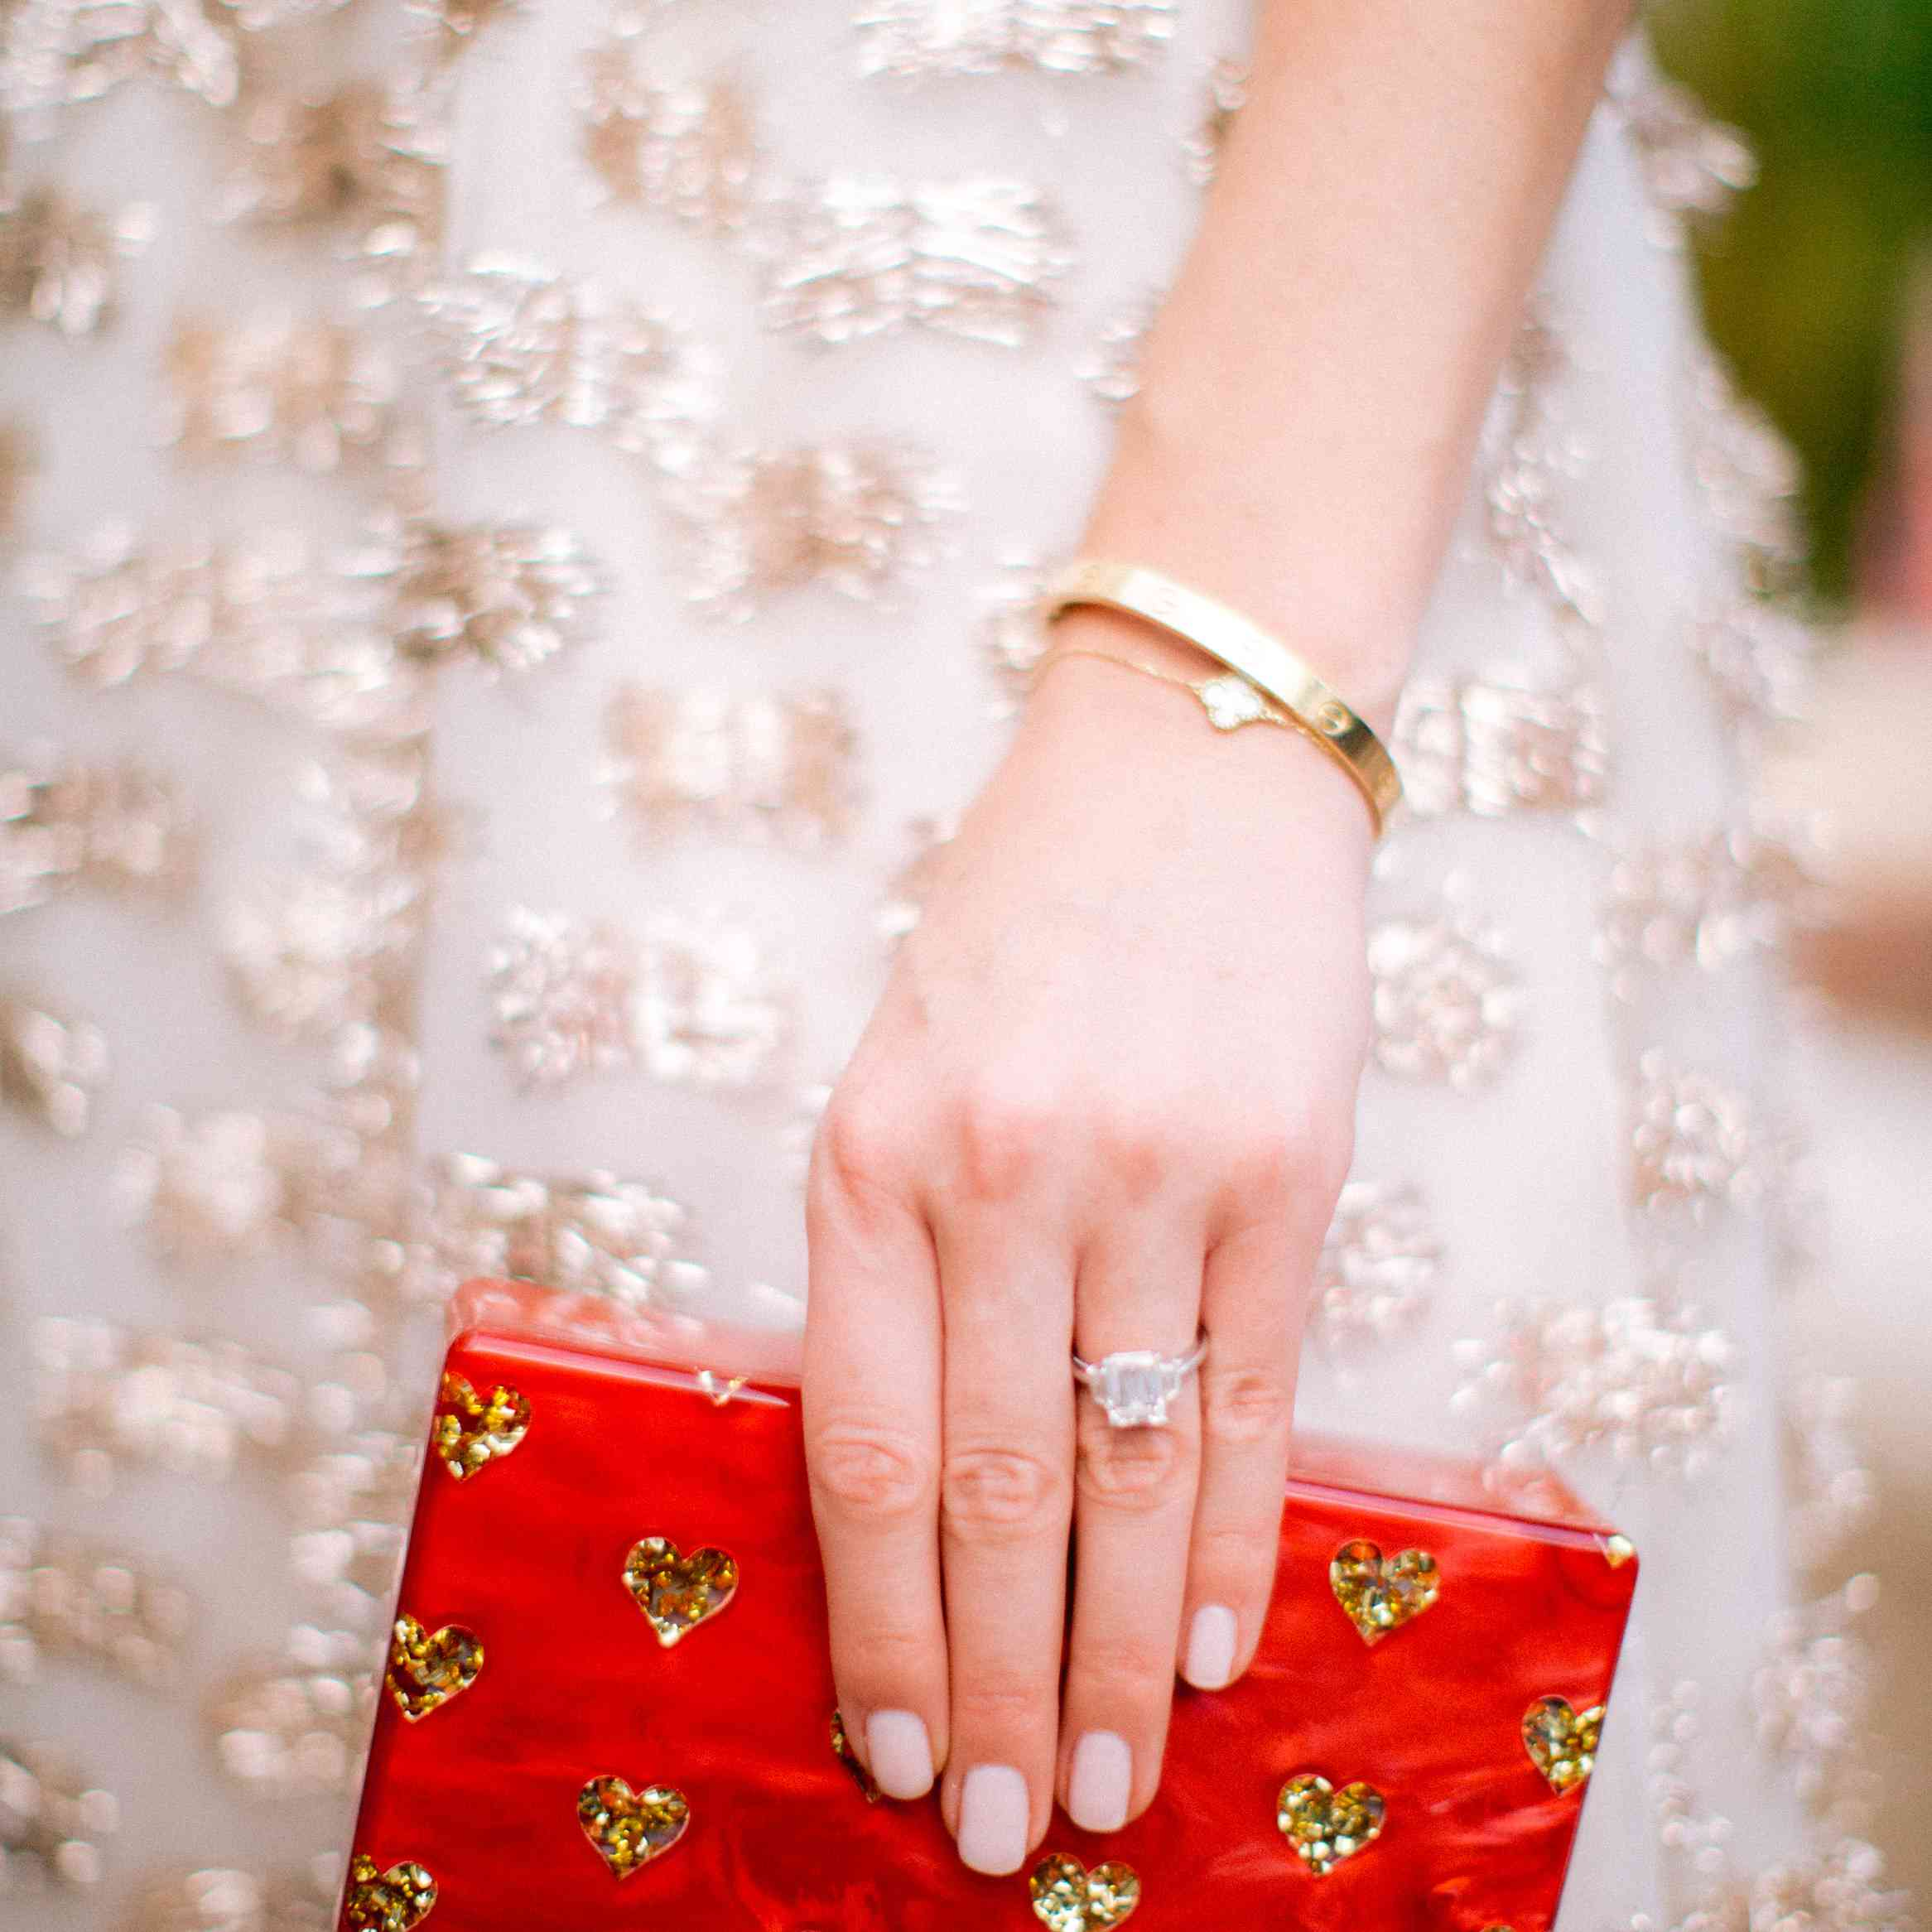 Bride carrying a red clutch with gold hearts